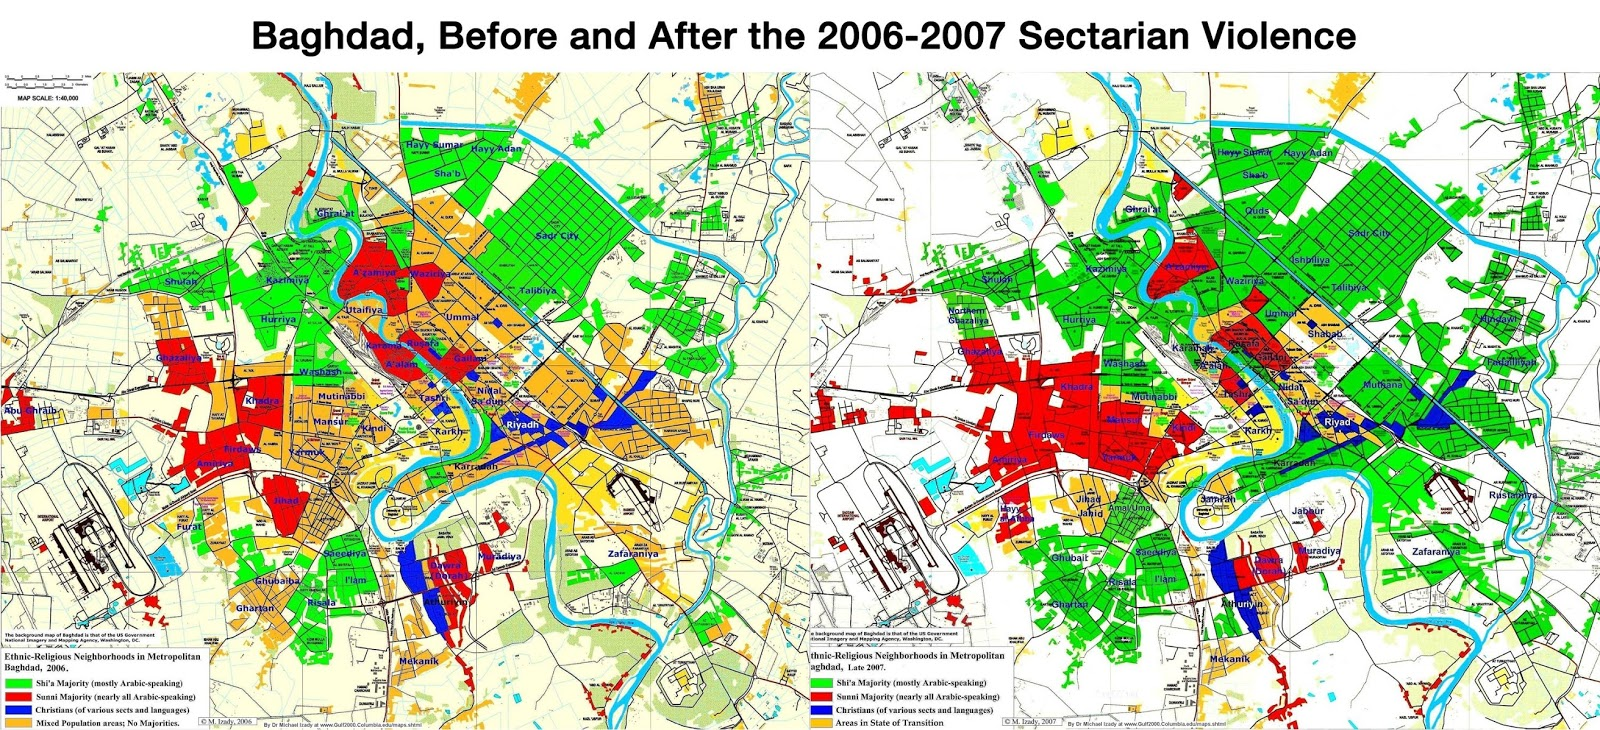 Baghdad, before & after the sectarian violence (2006 - 2007)